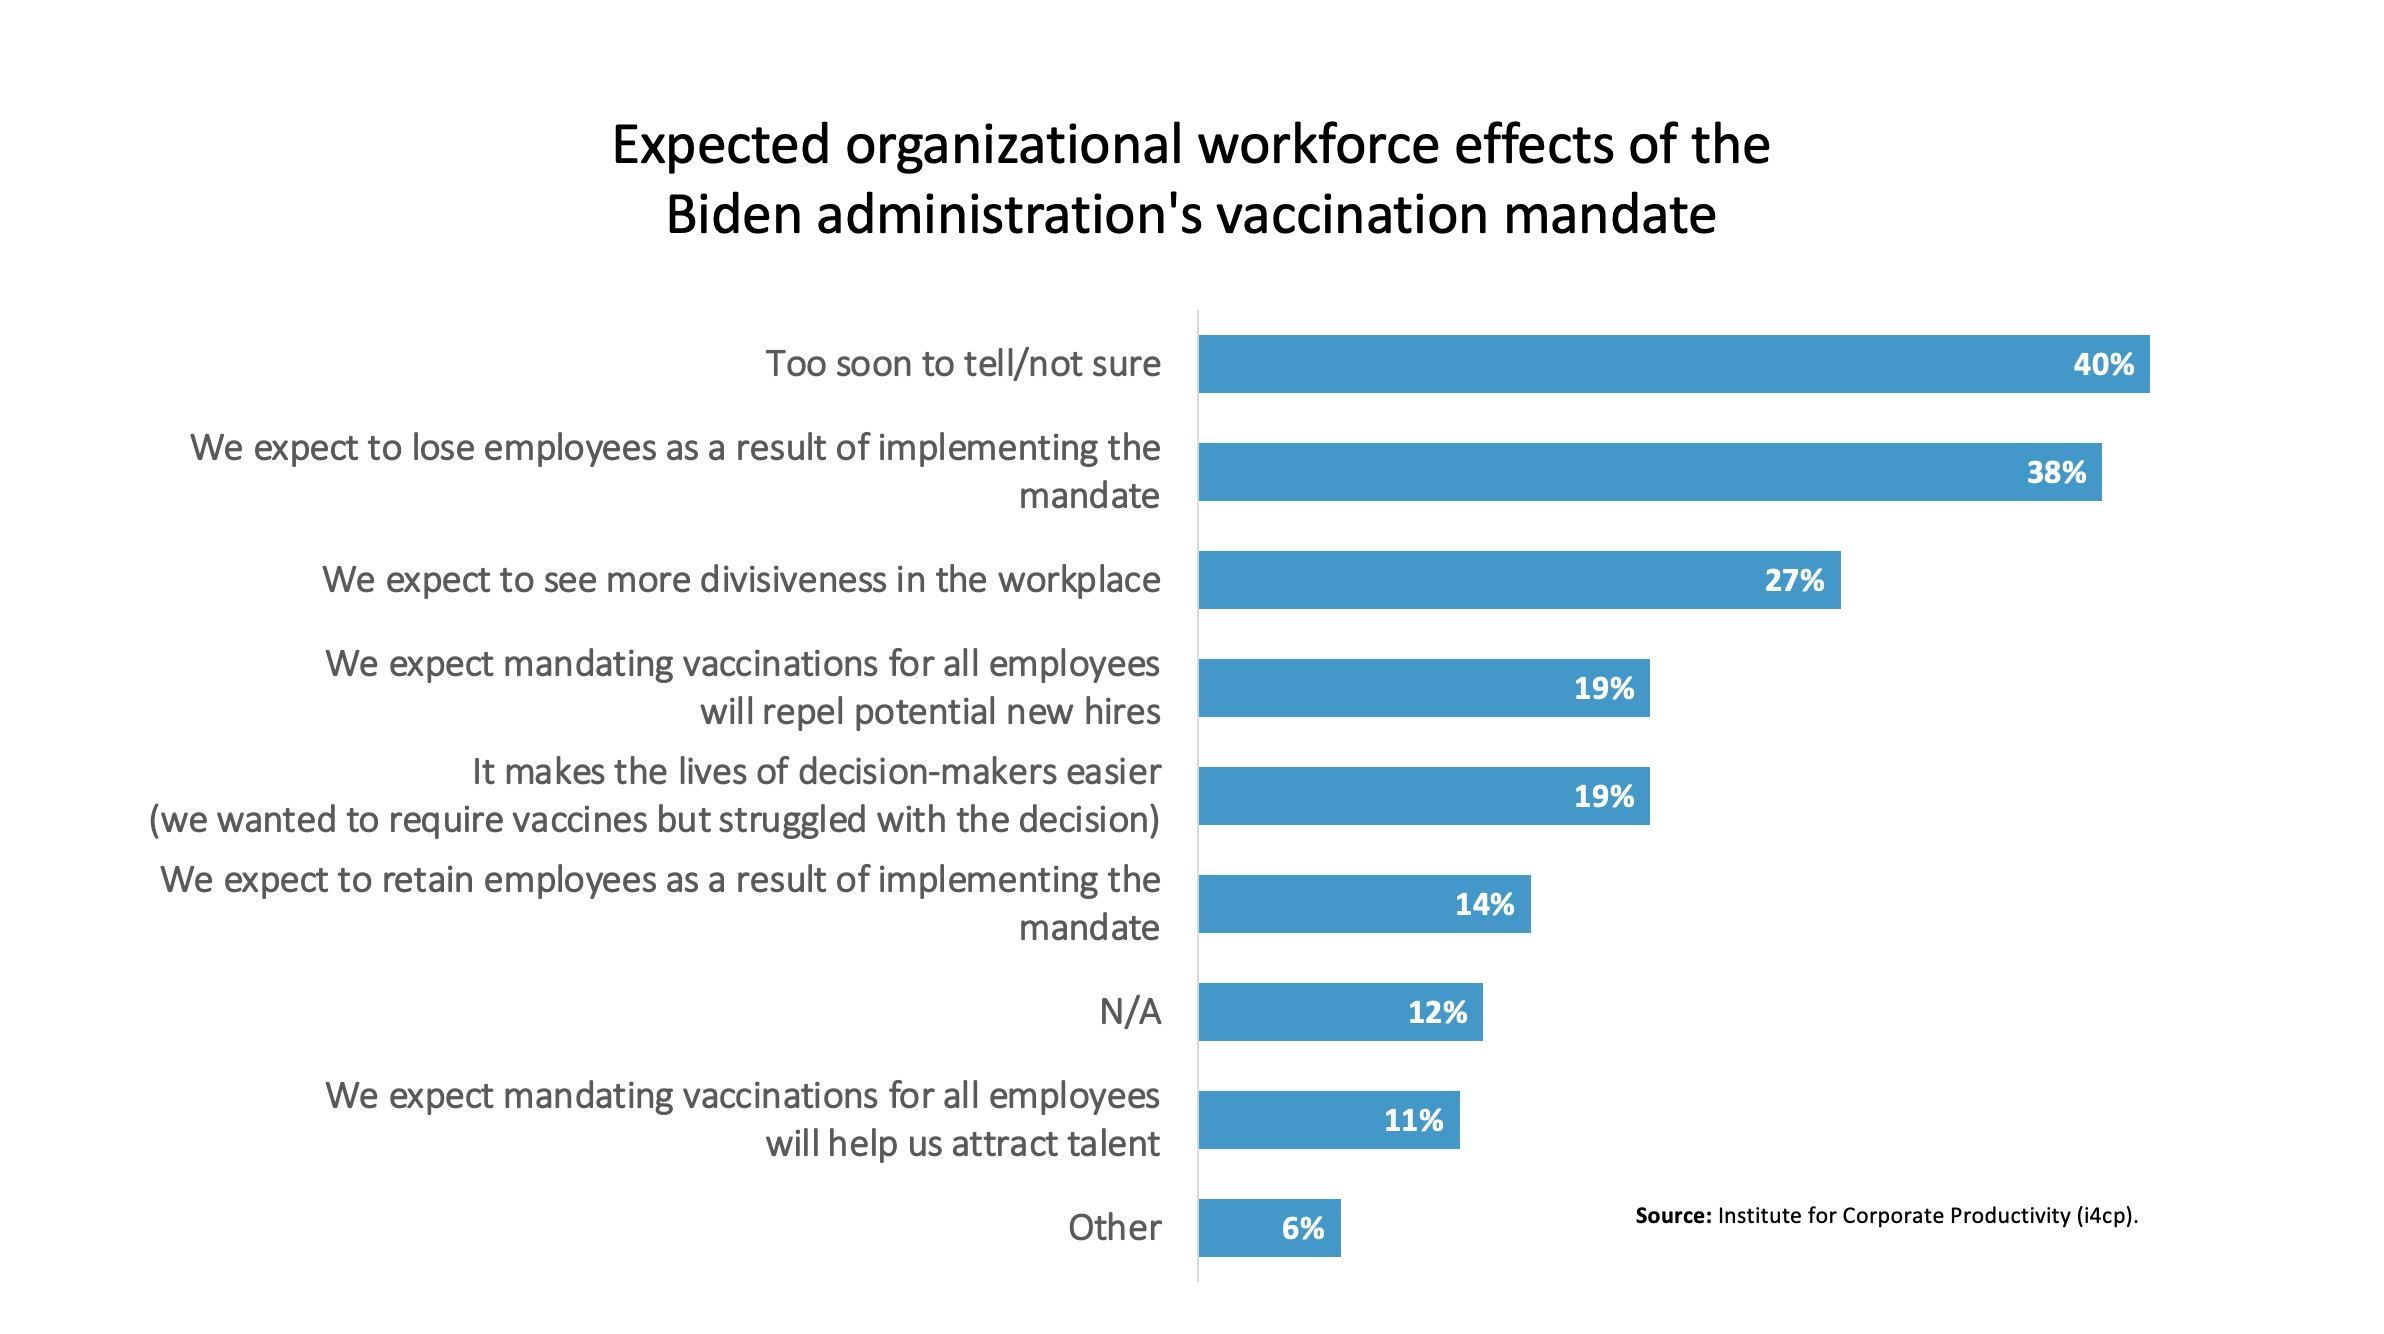 Expected workforce effects from the vaccine mandates chart